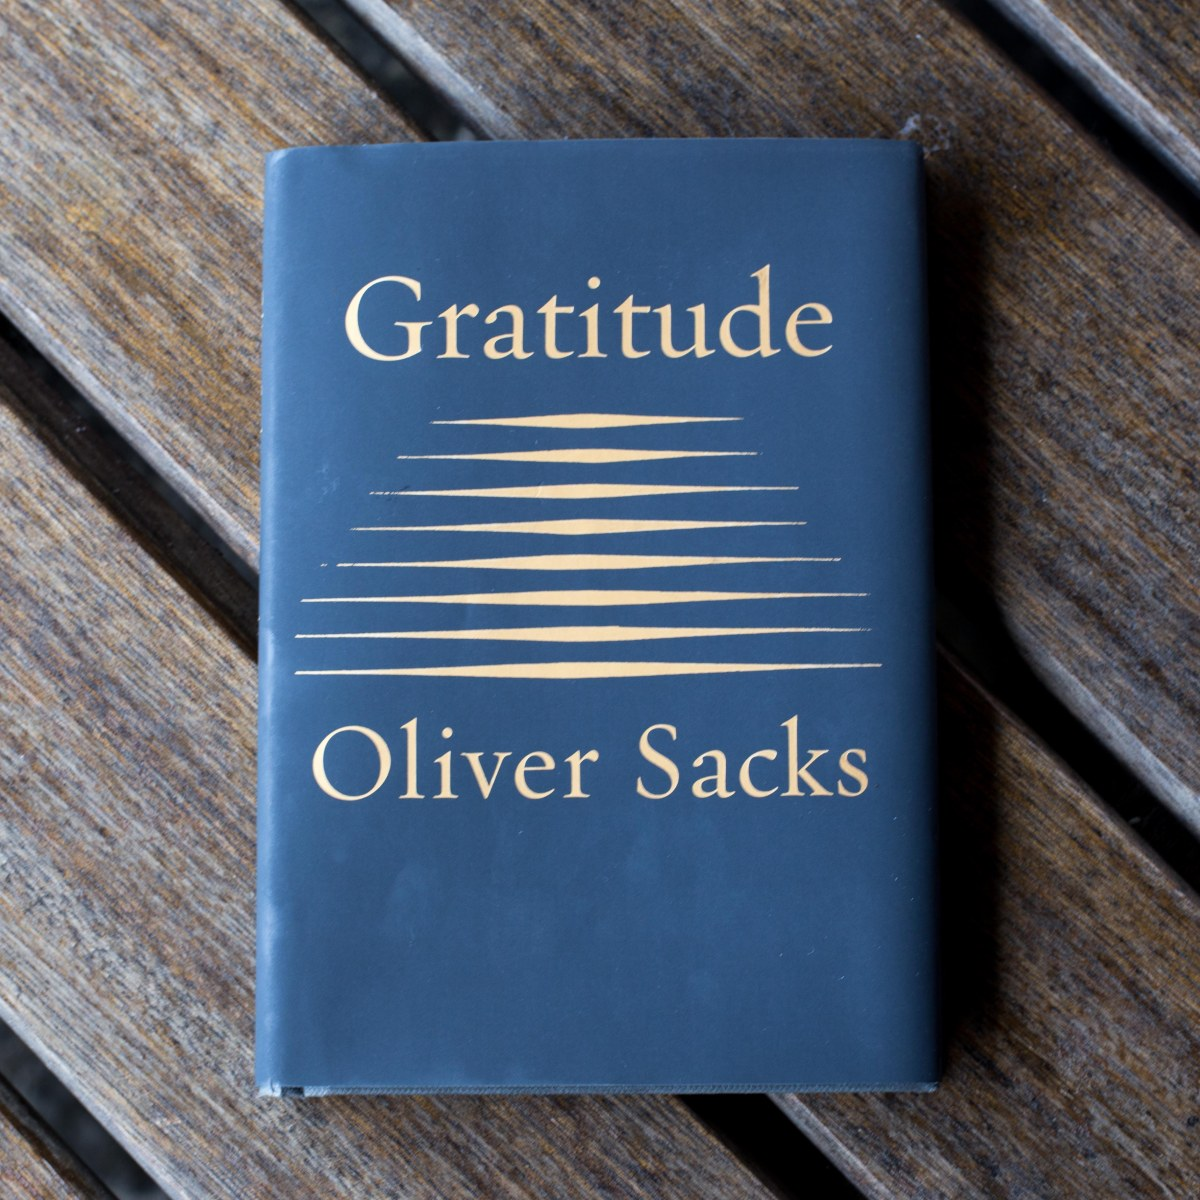 Oliver Sacks on Gratitude